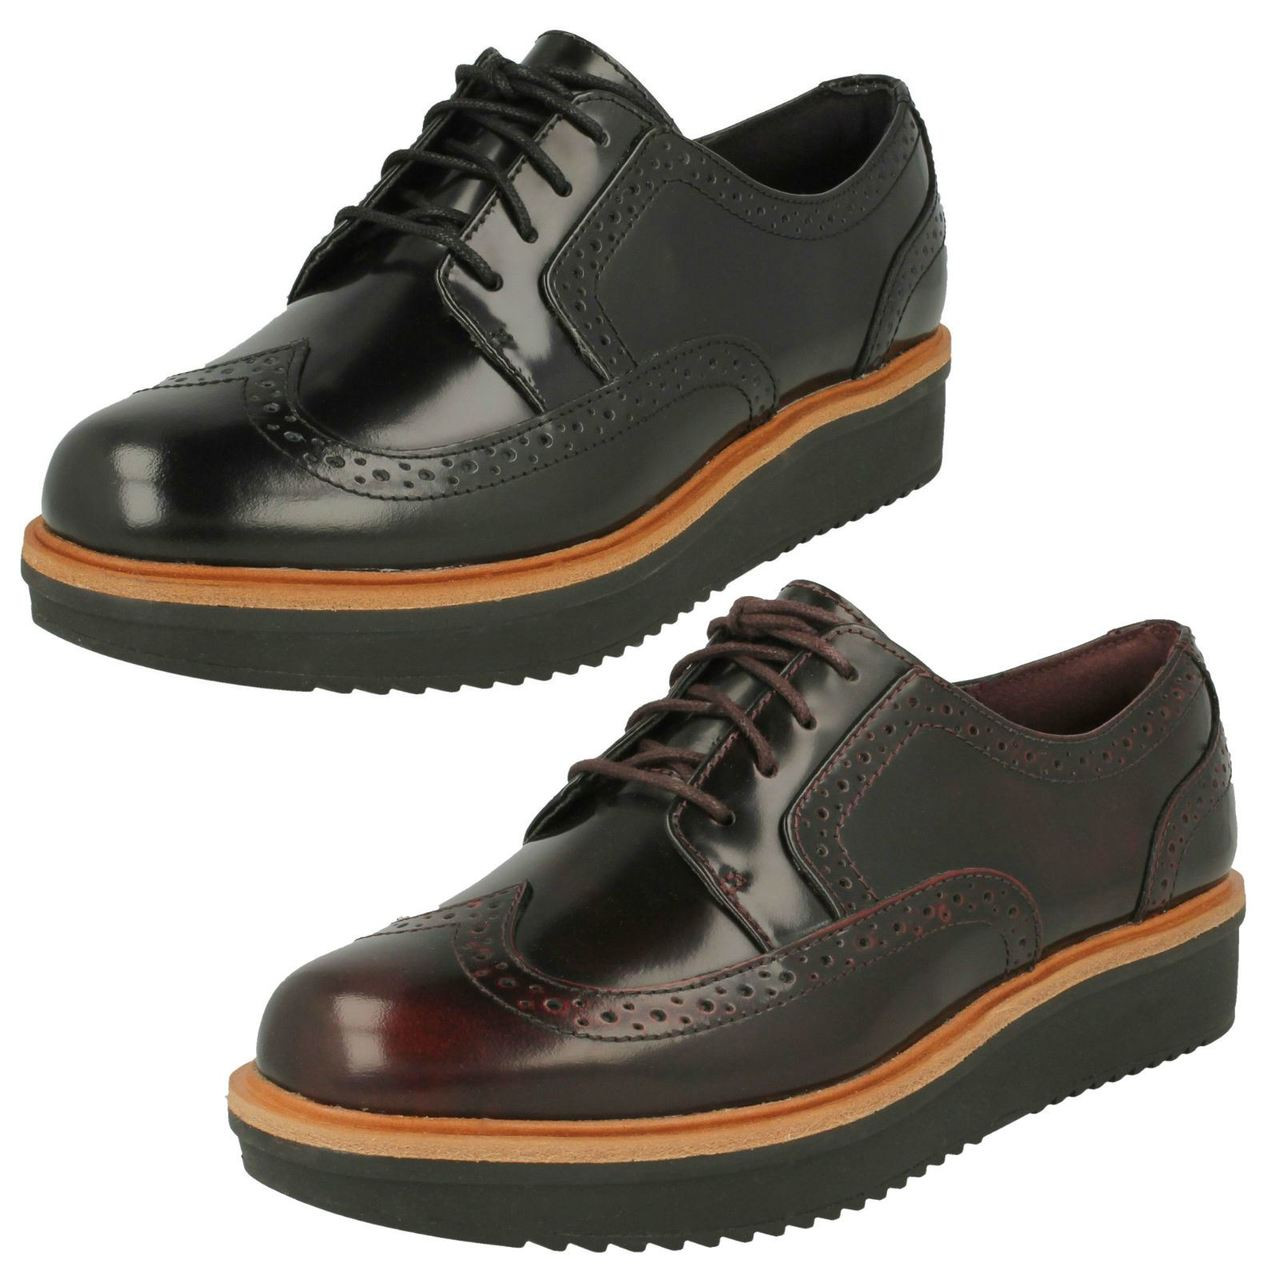 Ladies Clarks Casual Brogue Style Shoes